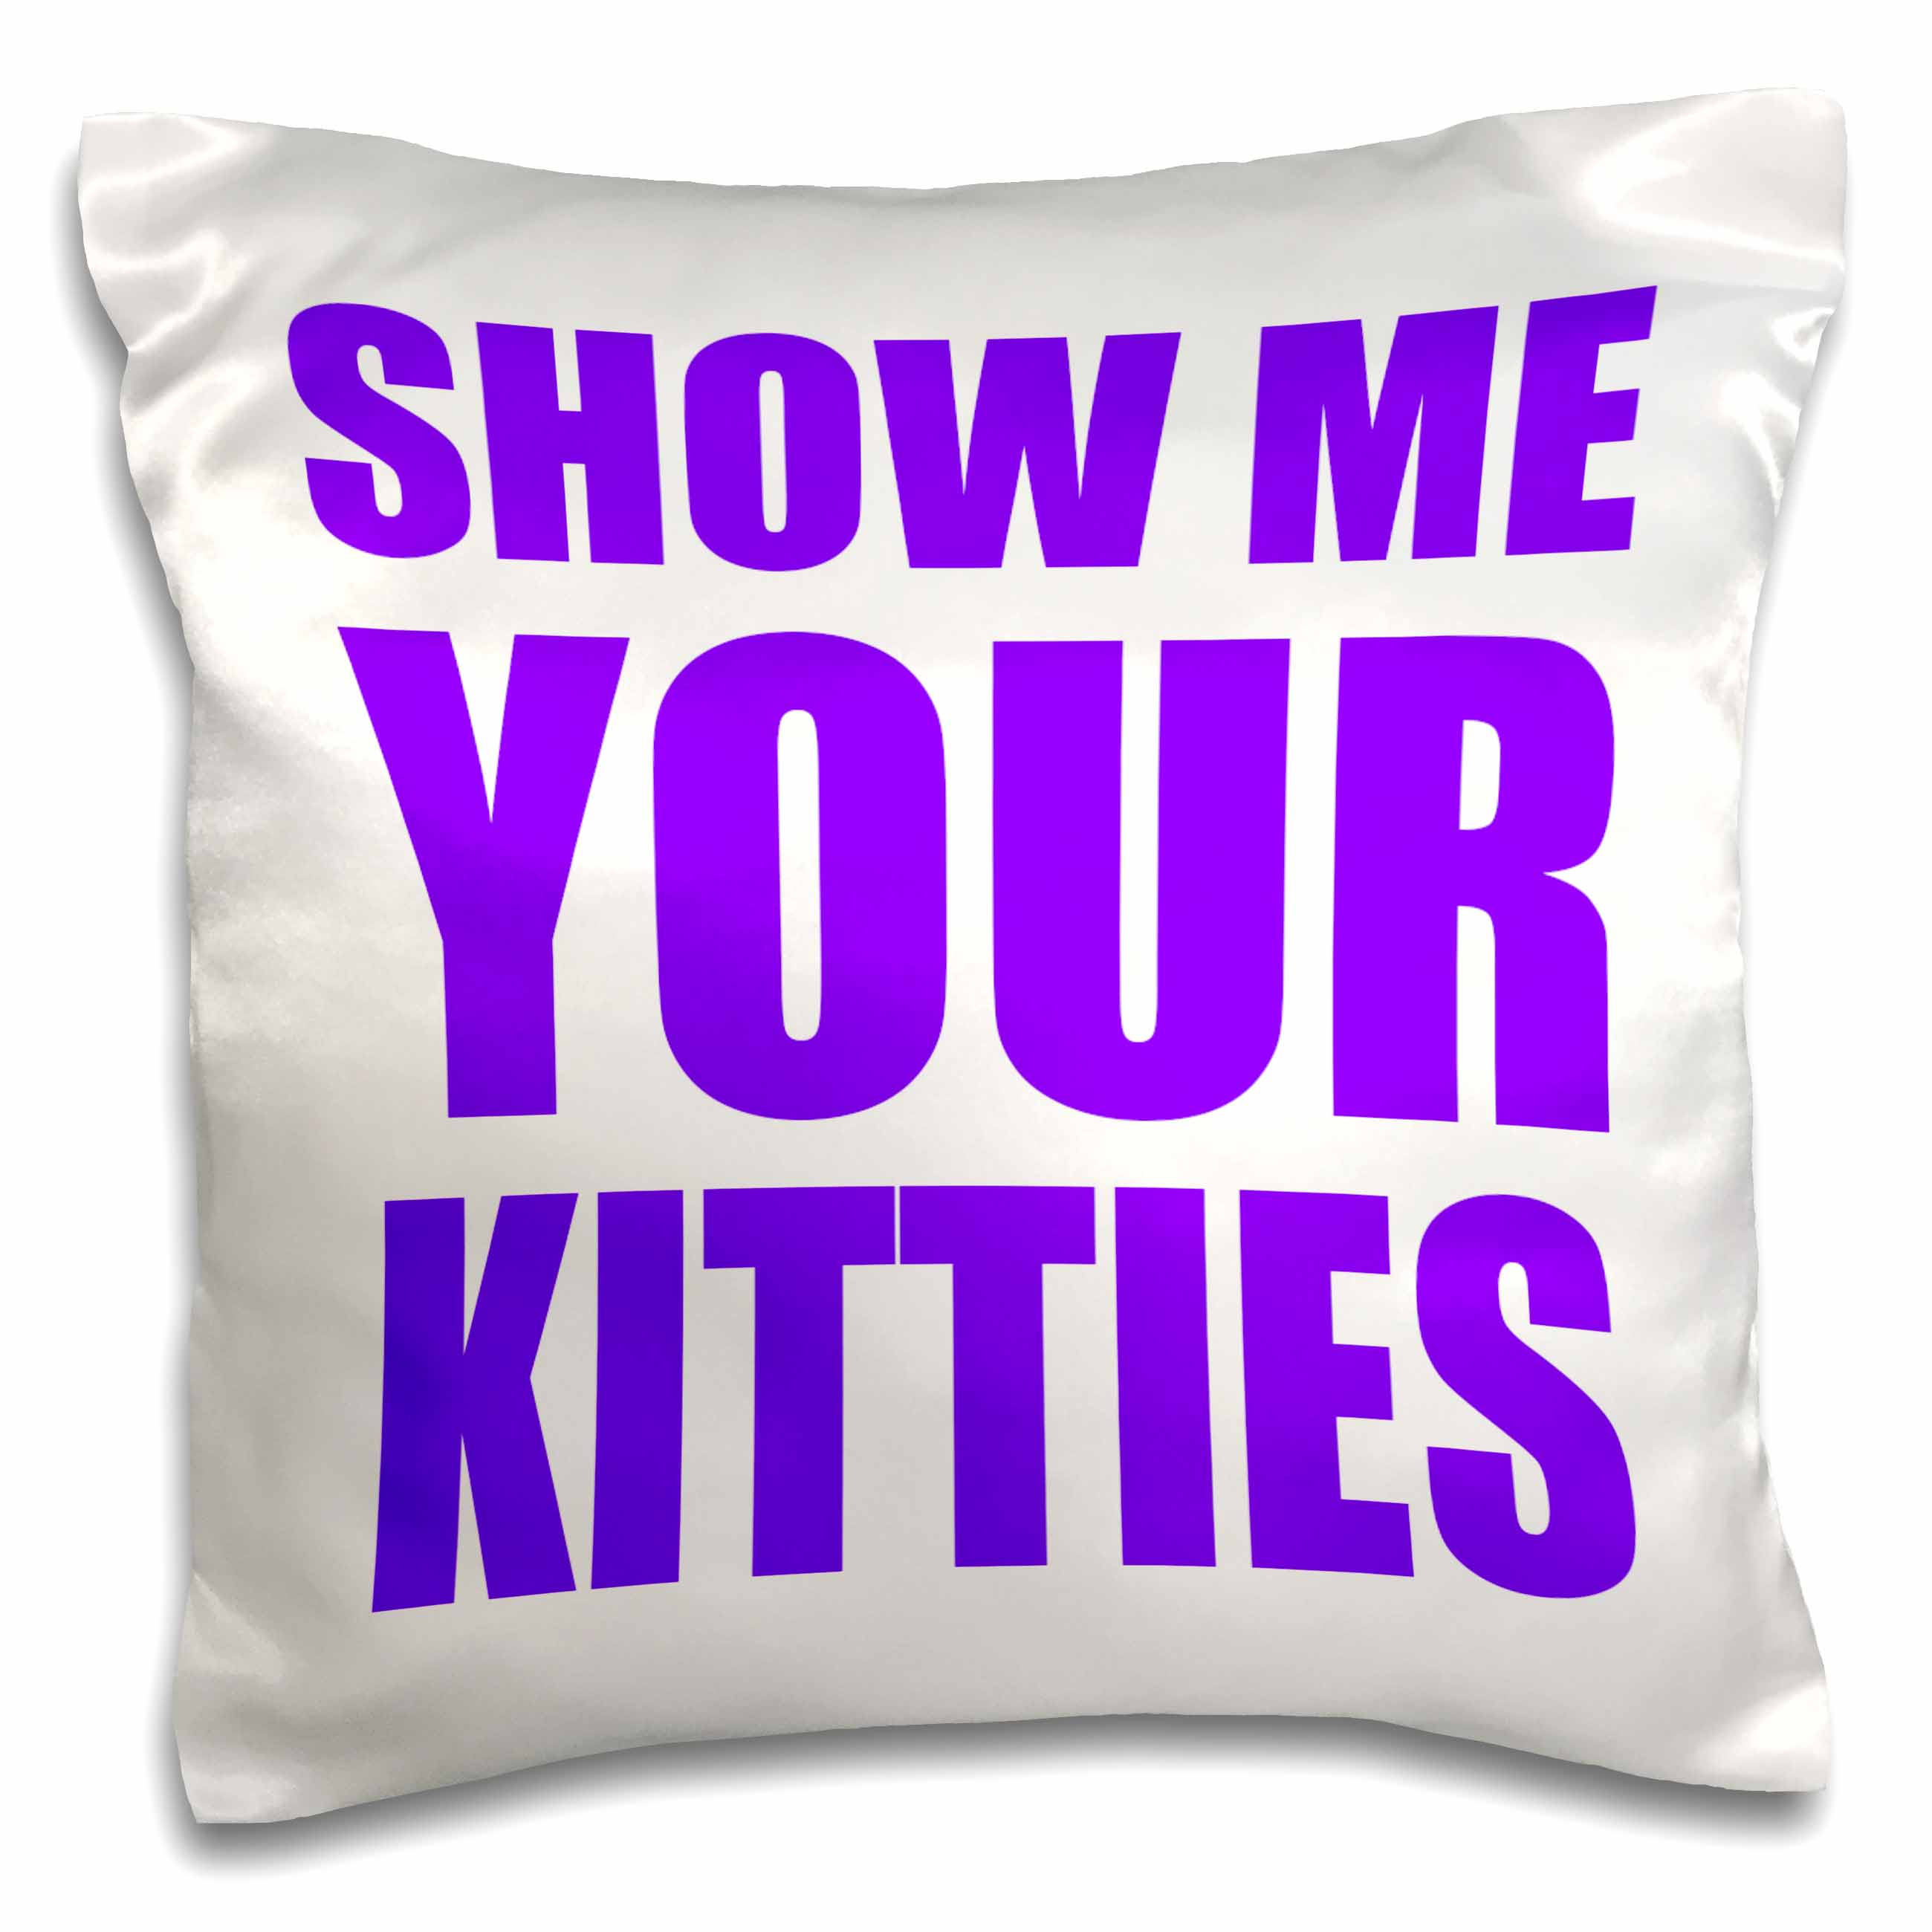 3dRose Show me your kitties, Purple, Pillow Case, 16 by 16-inch